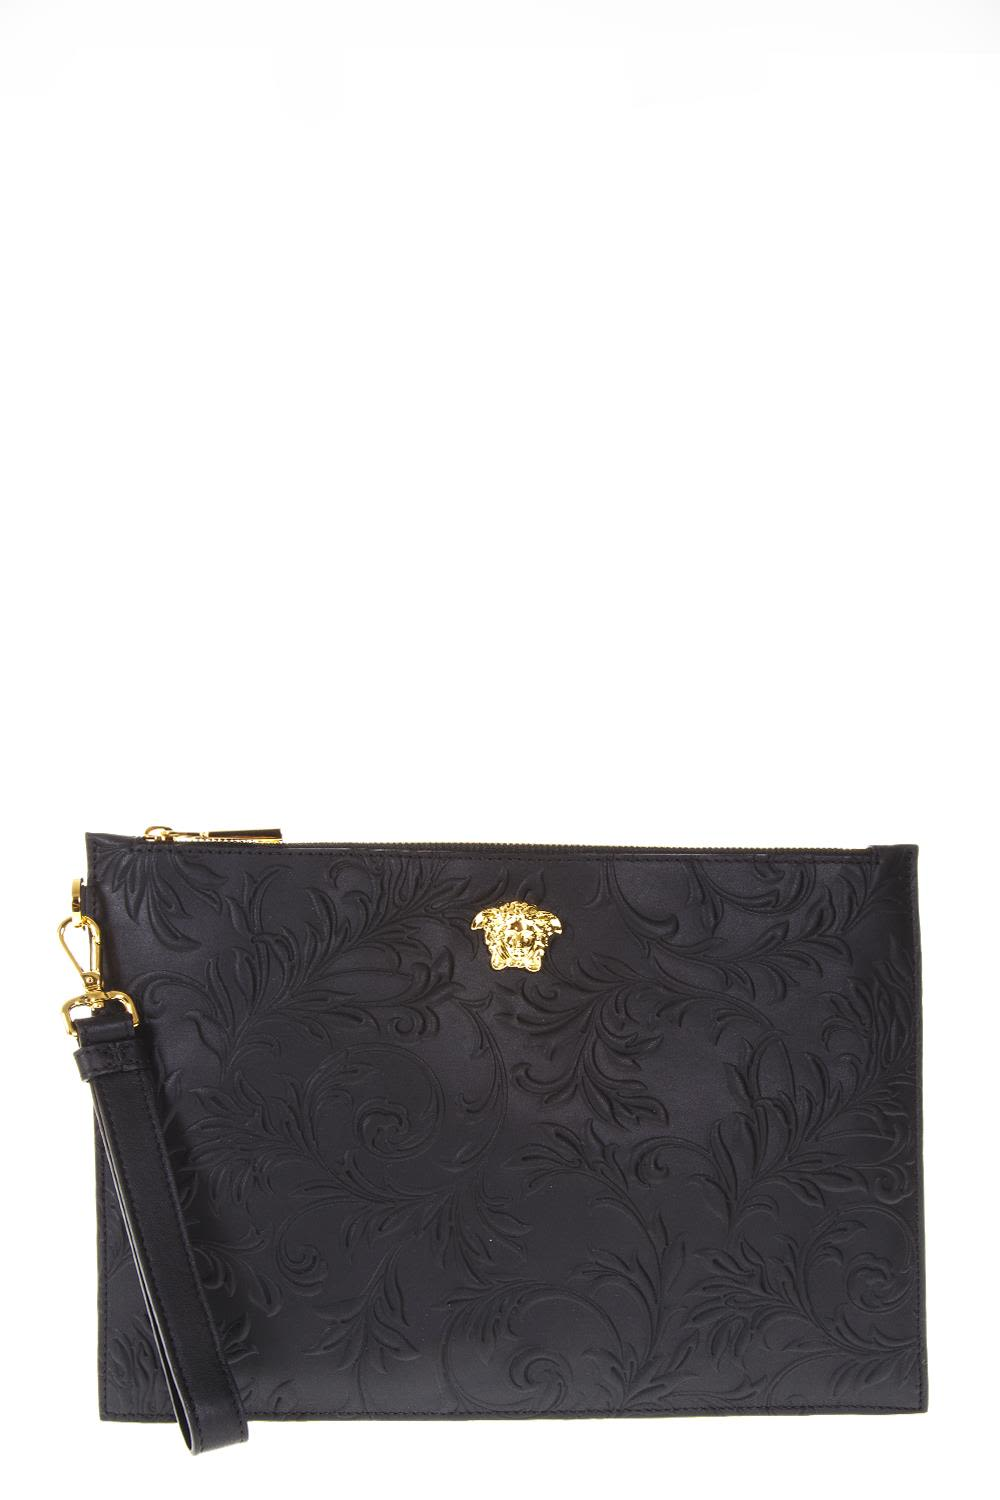 VERSACE BLACK MEDUSA EMBOSSED FLOWER CLUTCH IN LEATHER